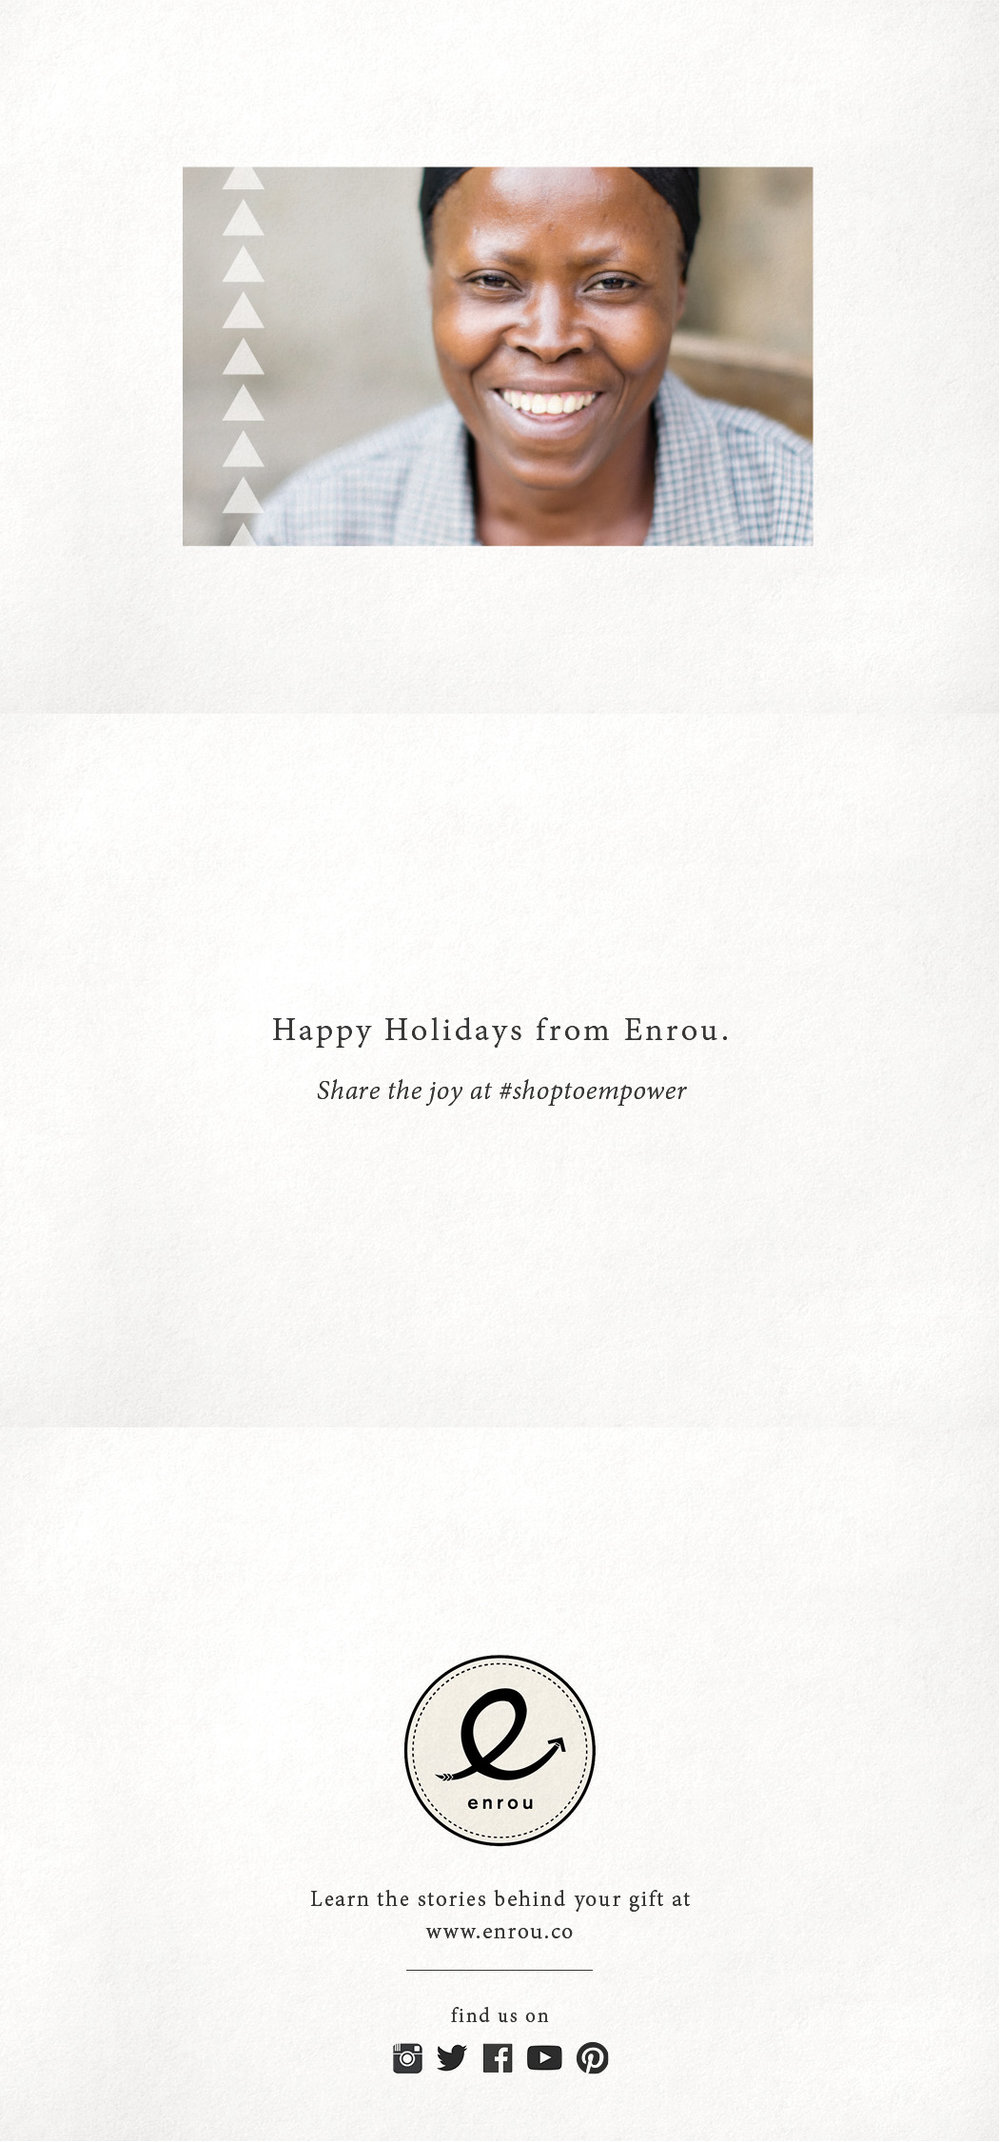 Enrou Holiday Card Layout.jpg